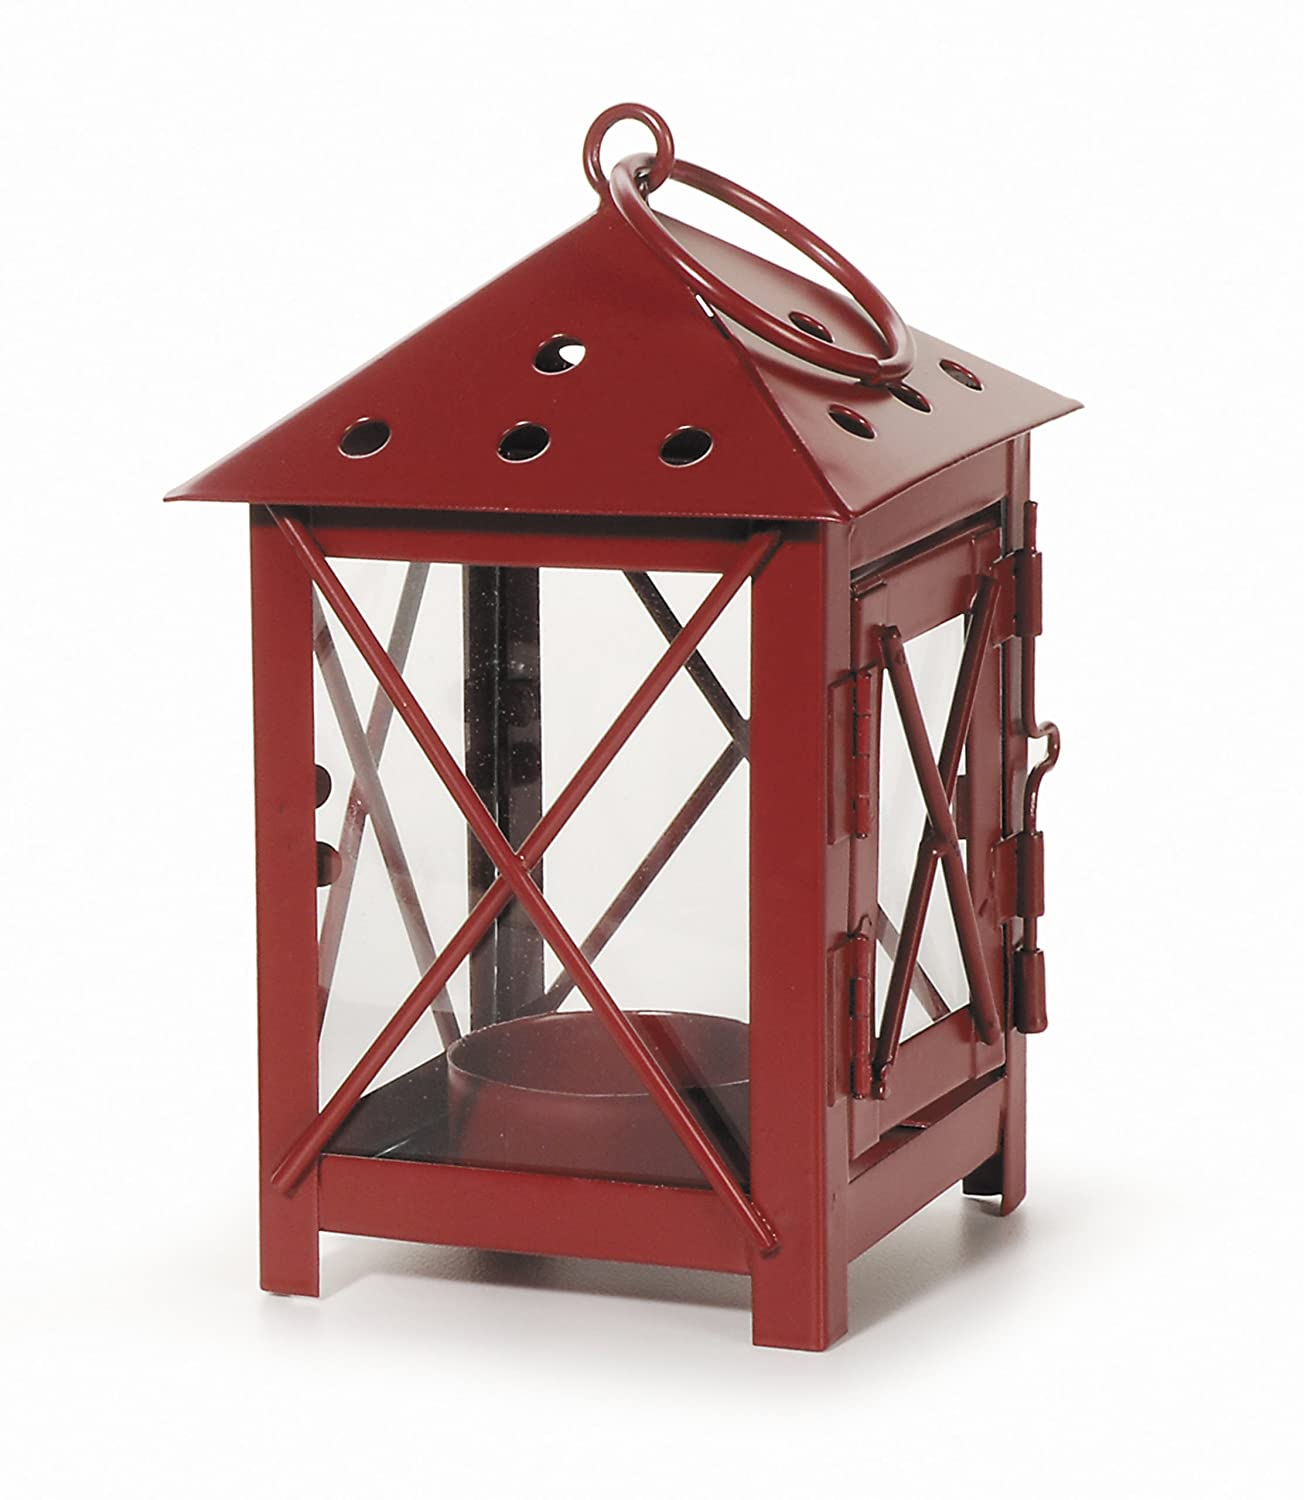 Darice 5228-12RED Metal Lantern 3 by 3 by 5.5-Inch Red